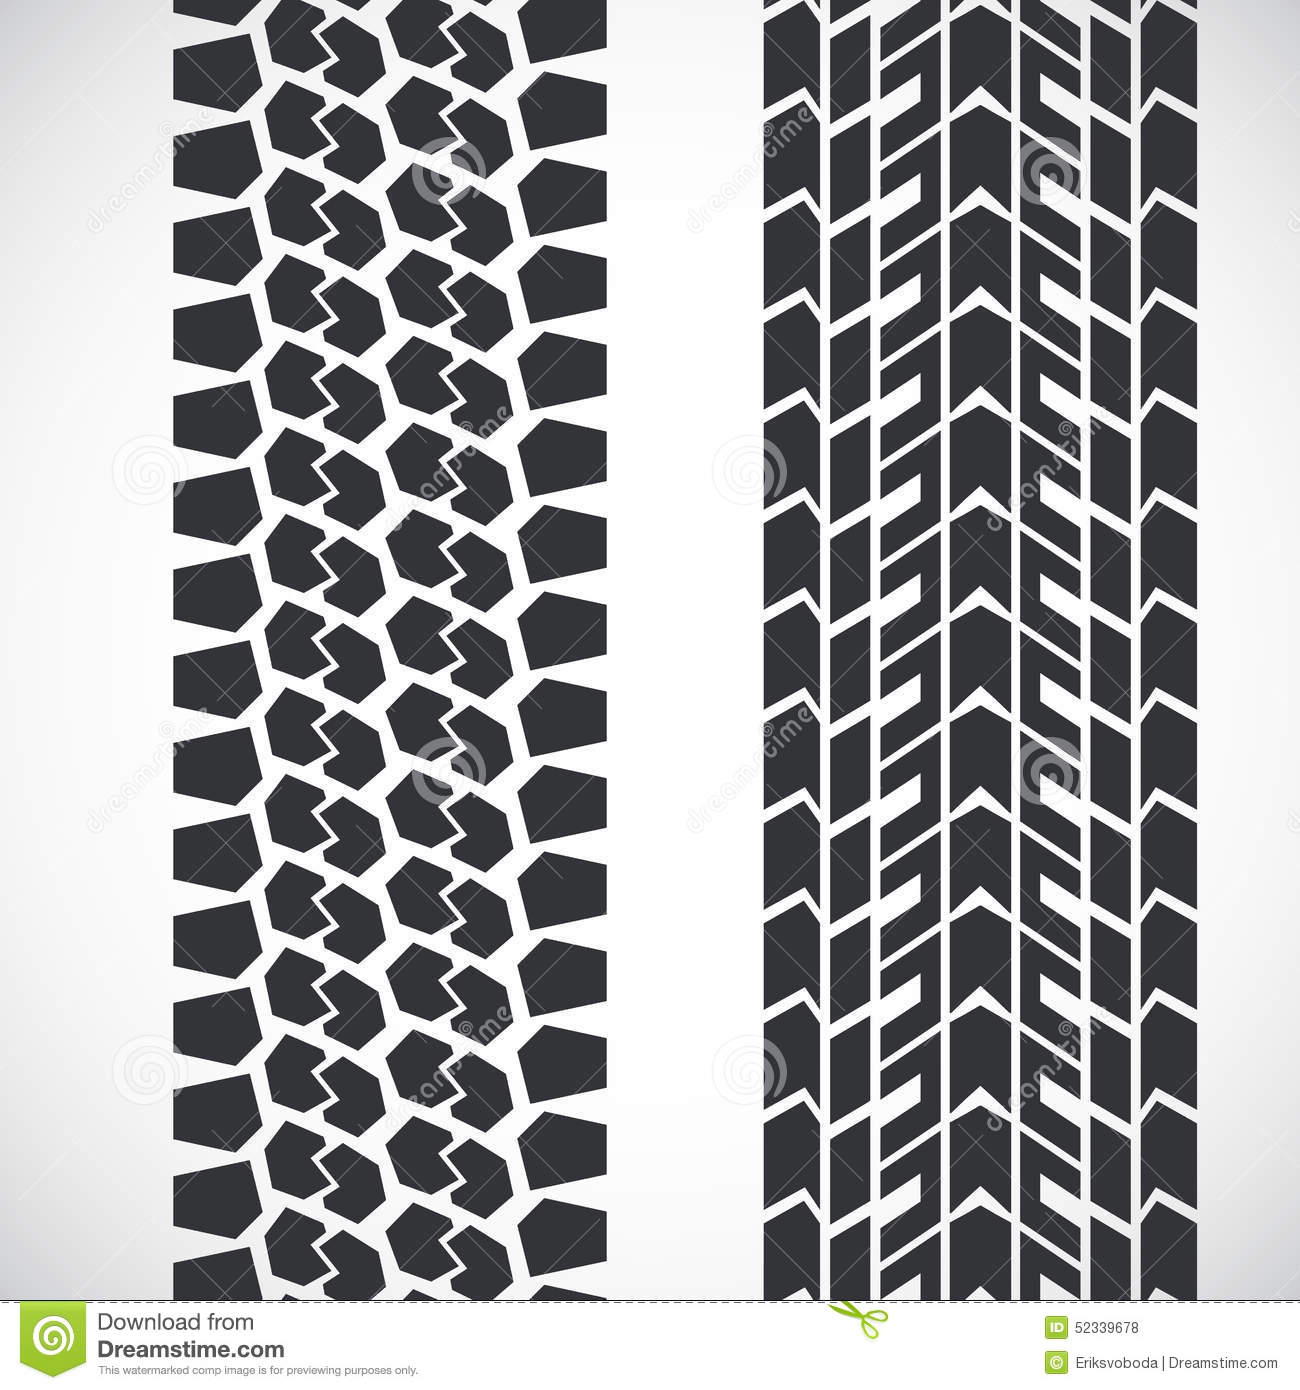 Tire tread patterns clipart graphic royalty free stock Tire Tread Clipart - e-biznes.info graphic royalty free stock